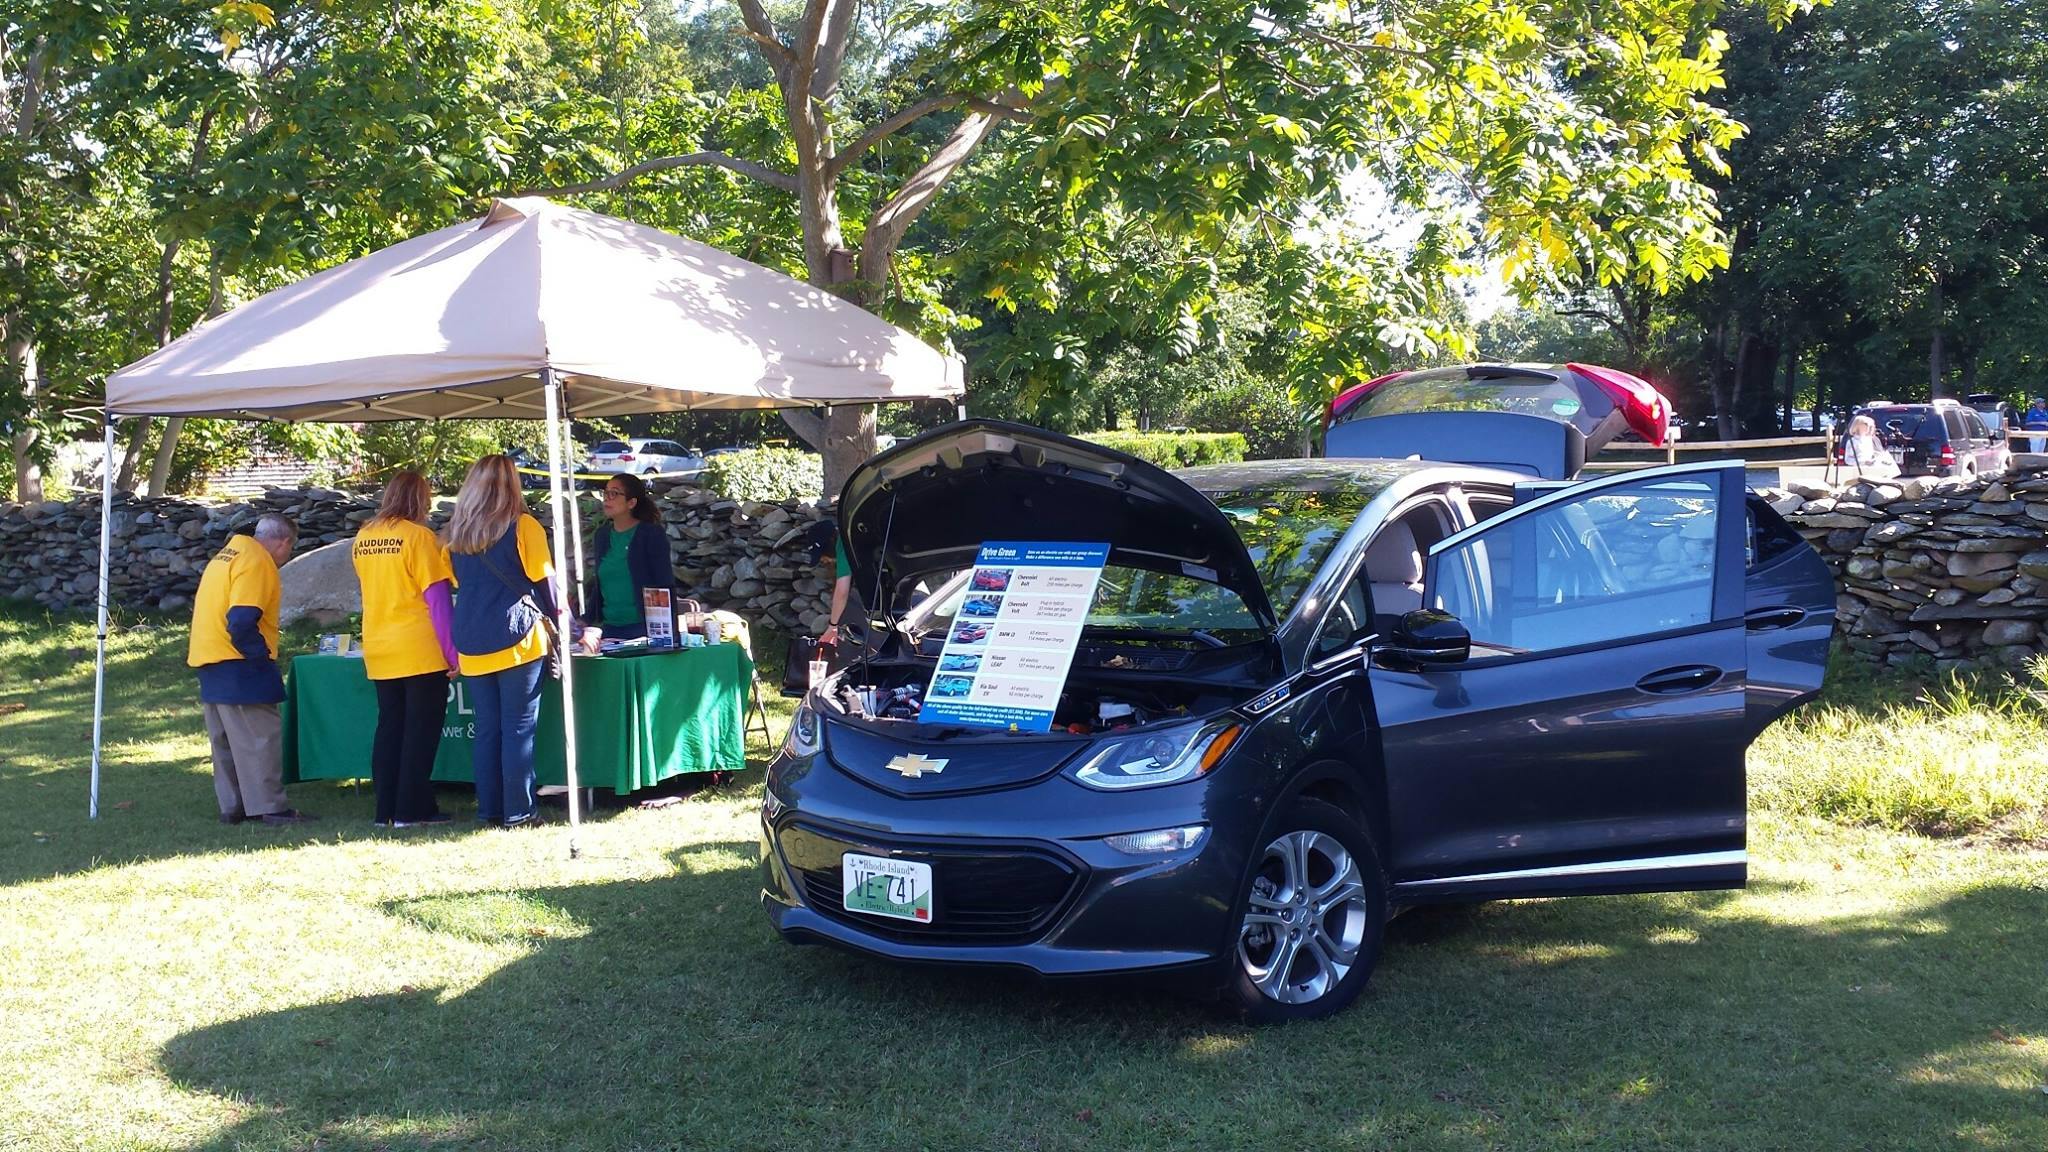 Tabling with an EV display